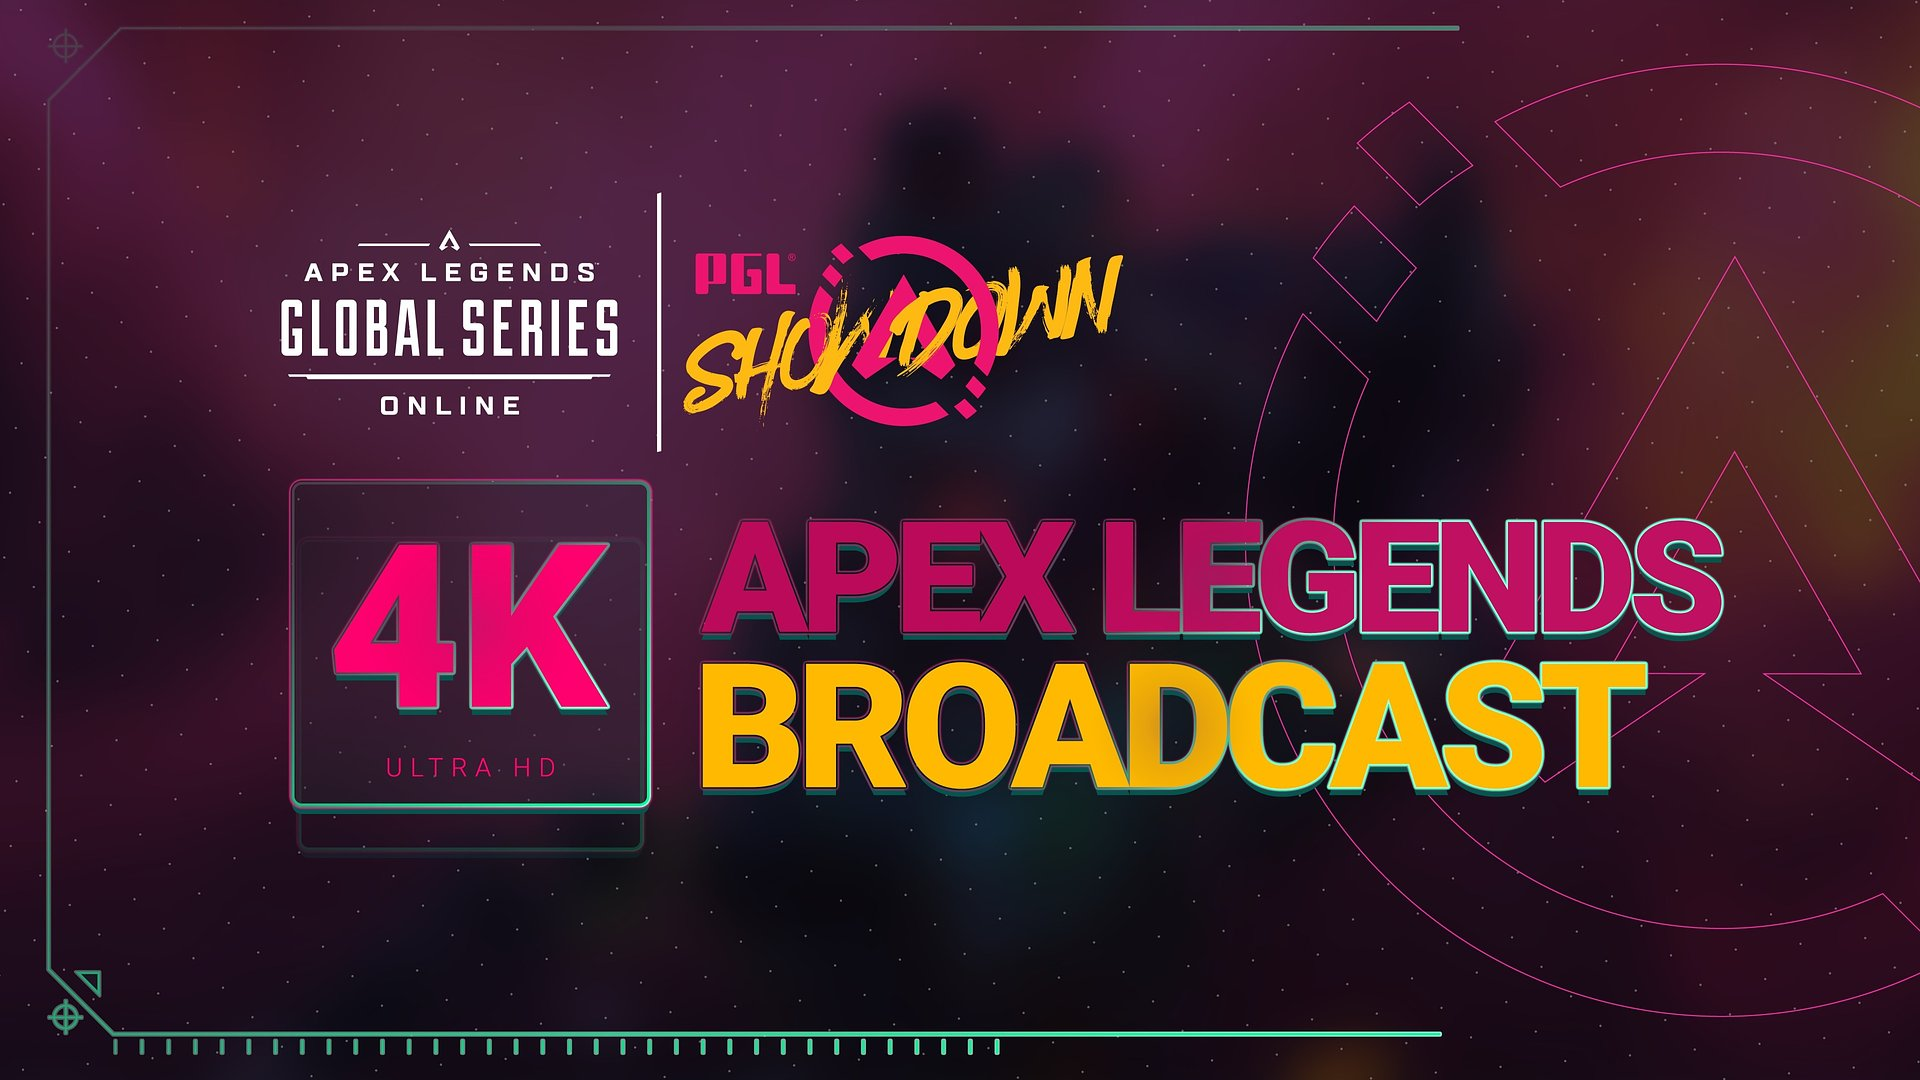 PGL APEX LEGENDS SHOWDOWN: world's first 4K Apex Legends broadcast, innovative AR, and in-depth stats